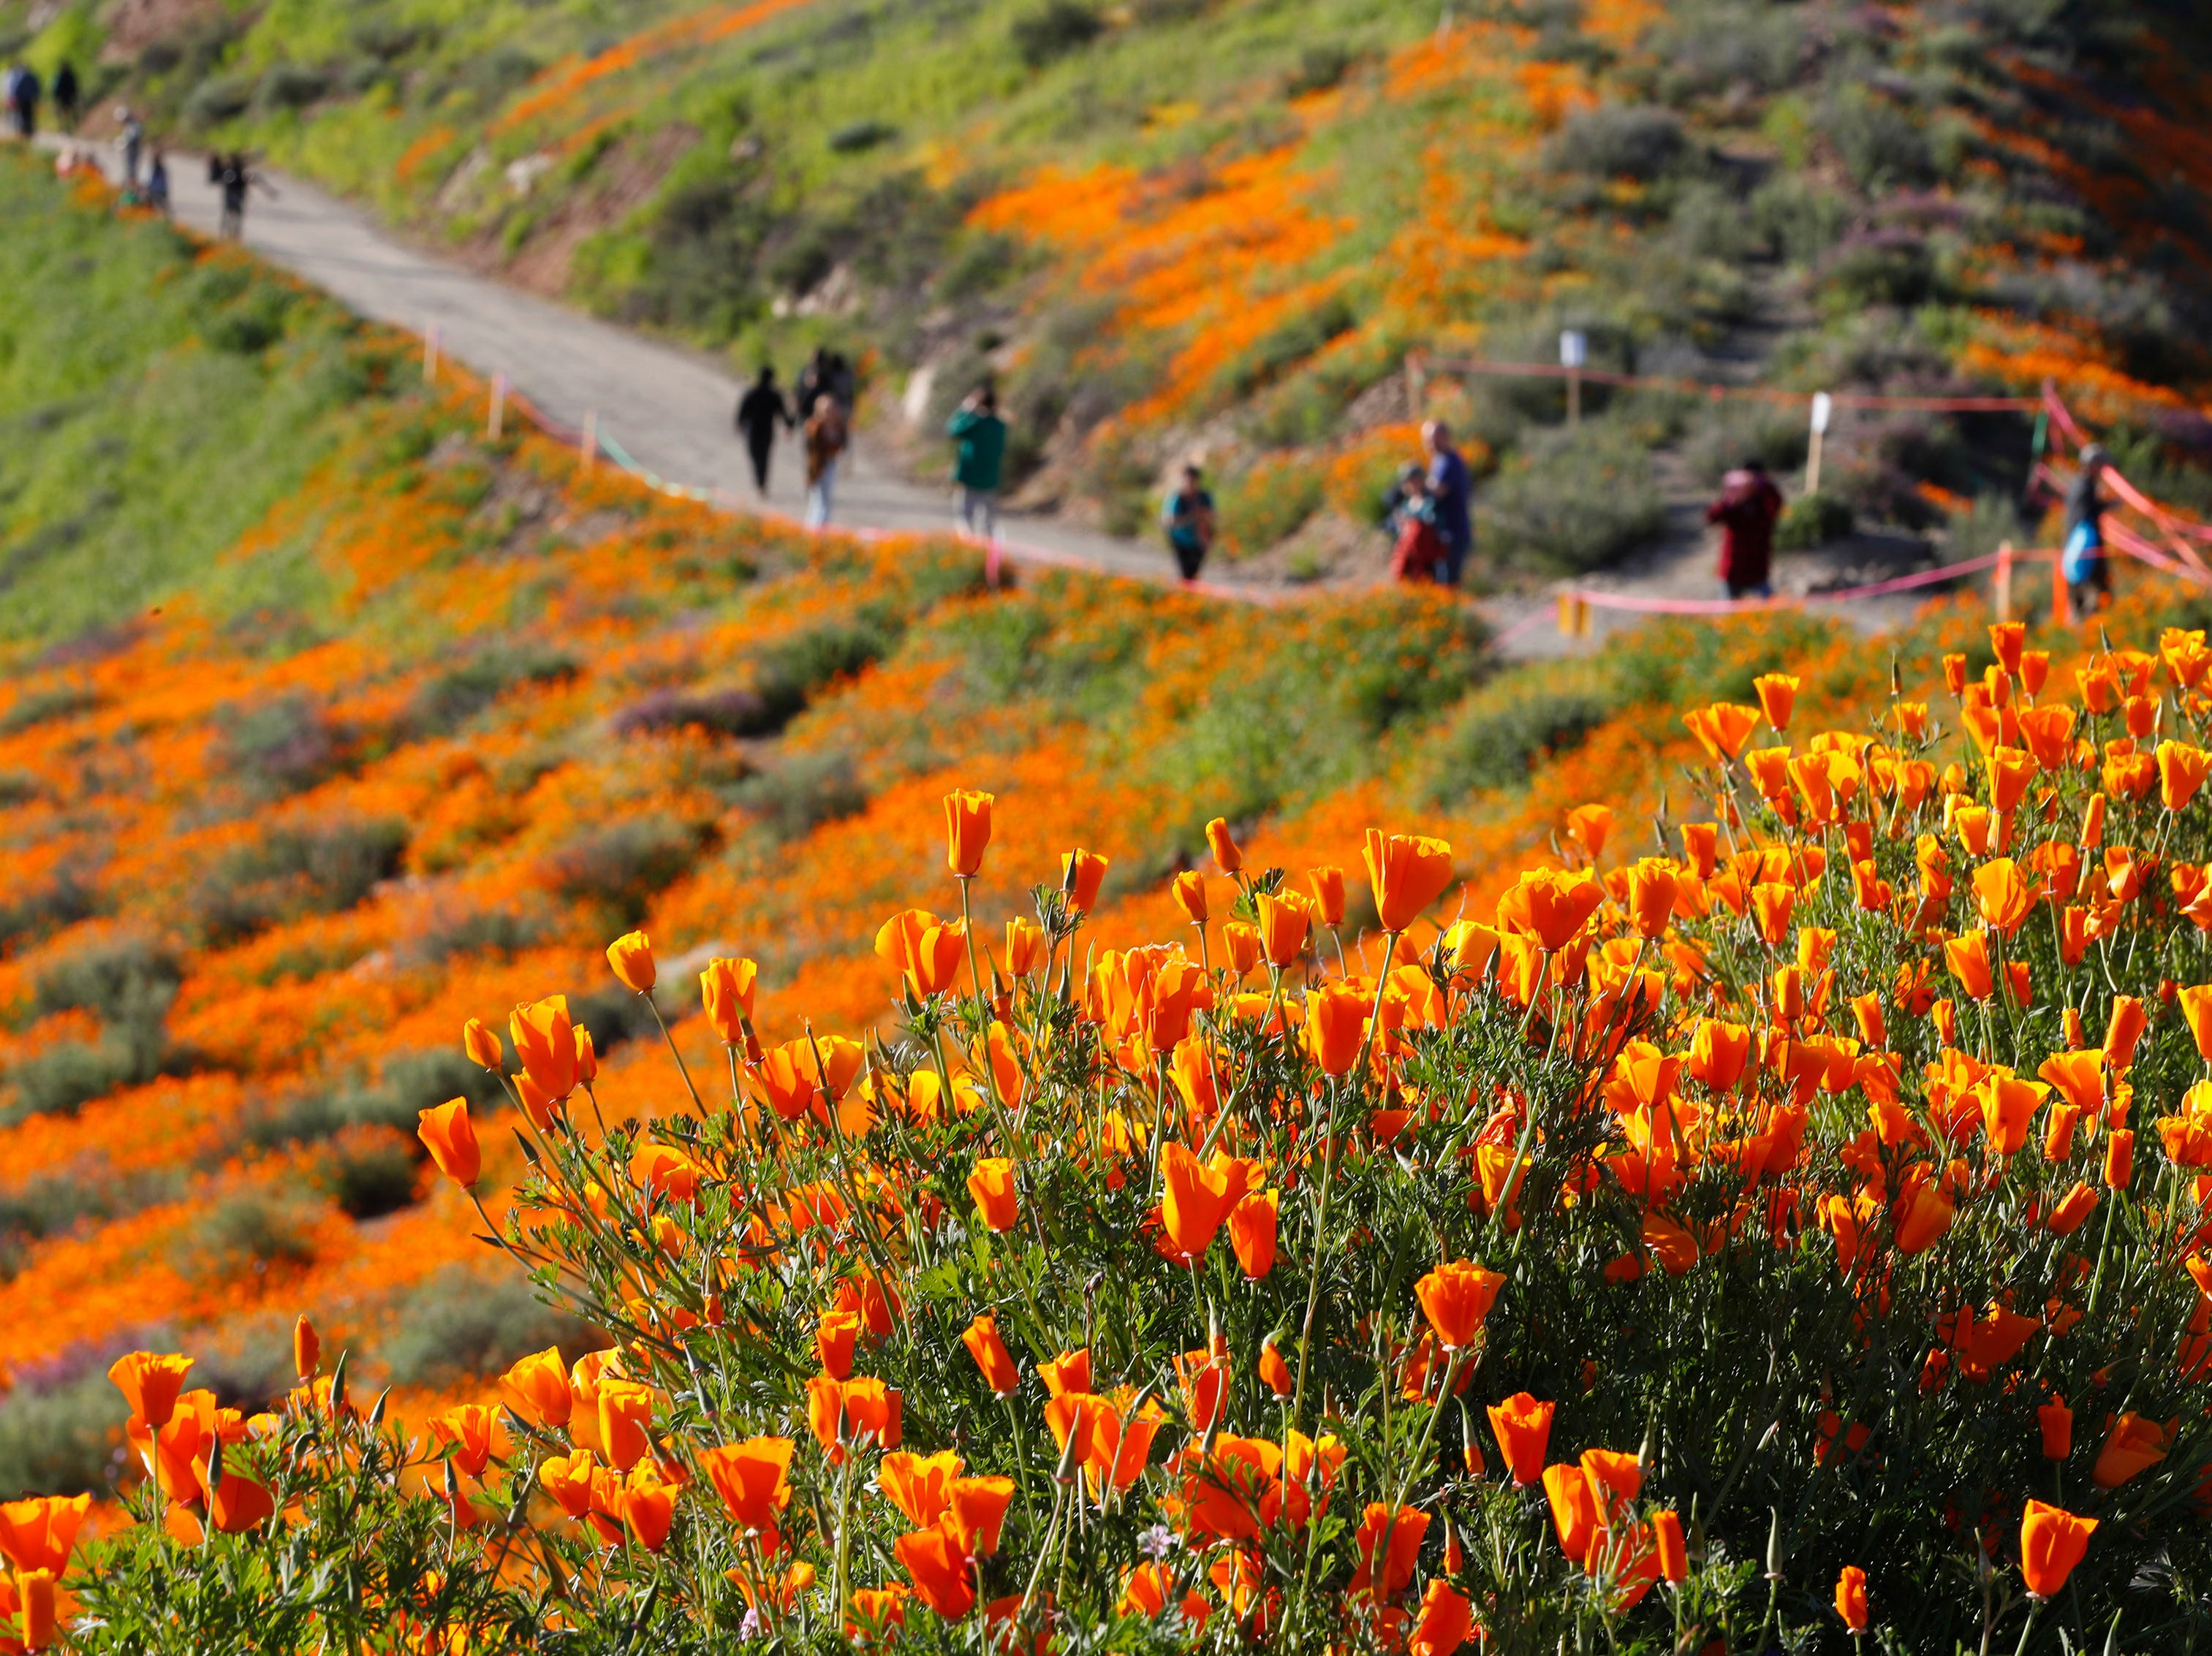 Visitors hike a path to see the poppies at Walker Canyon in Lake Elsinore, Calif. Sunday March 17, 2019. After massive crowds flooded the small community to see the flowers, city officials have shut down Walker Canyon to the public. No shuttles or visitors will be allowed.